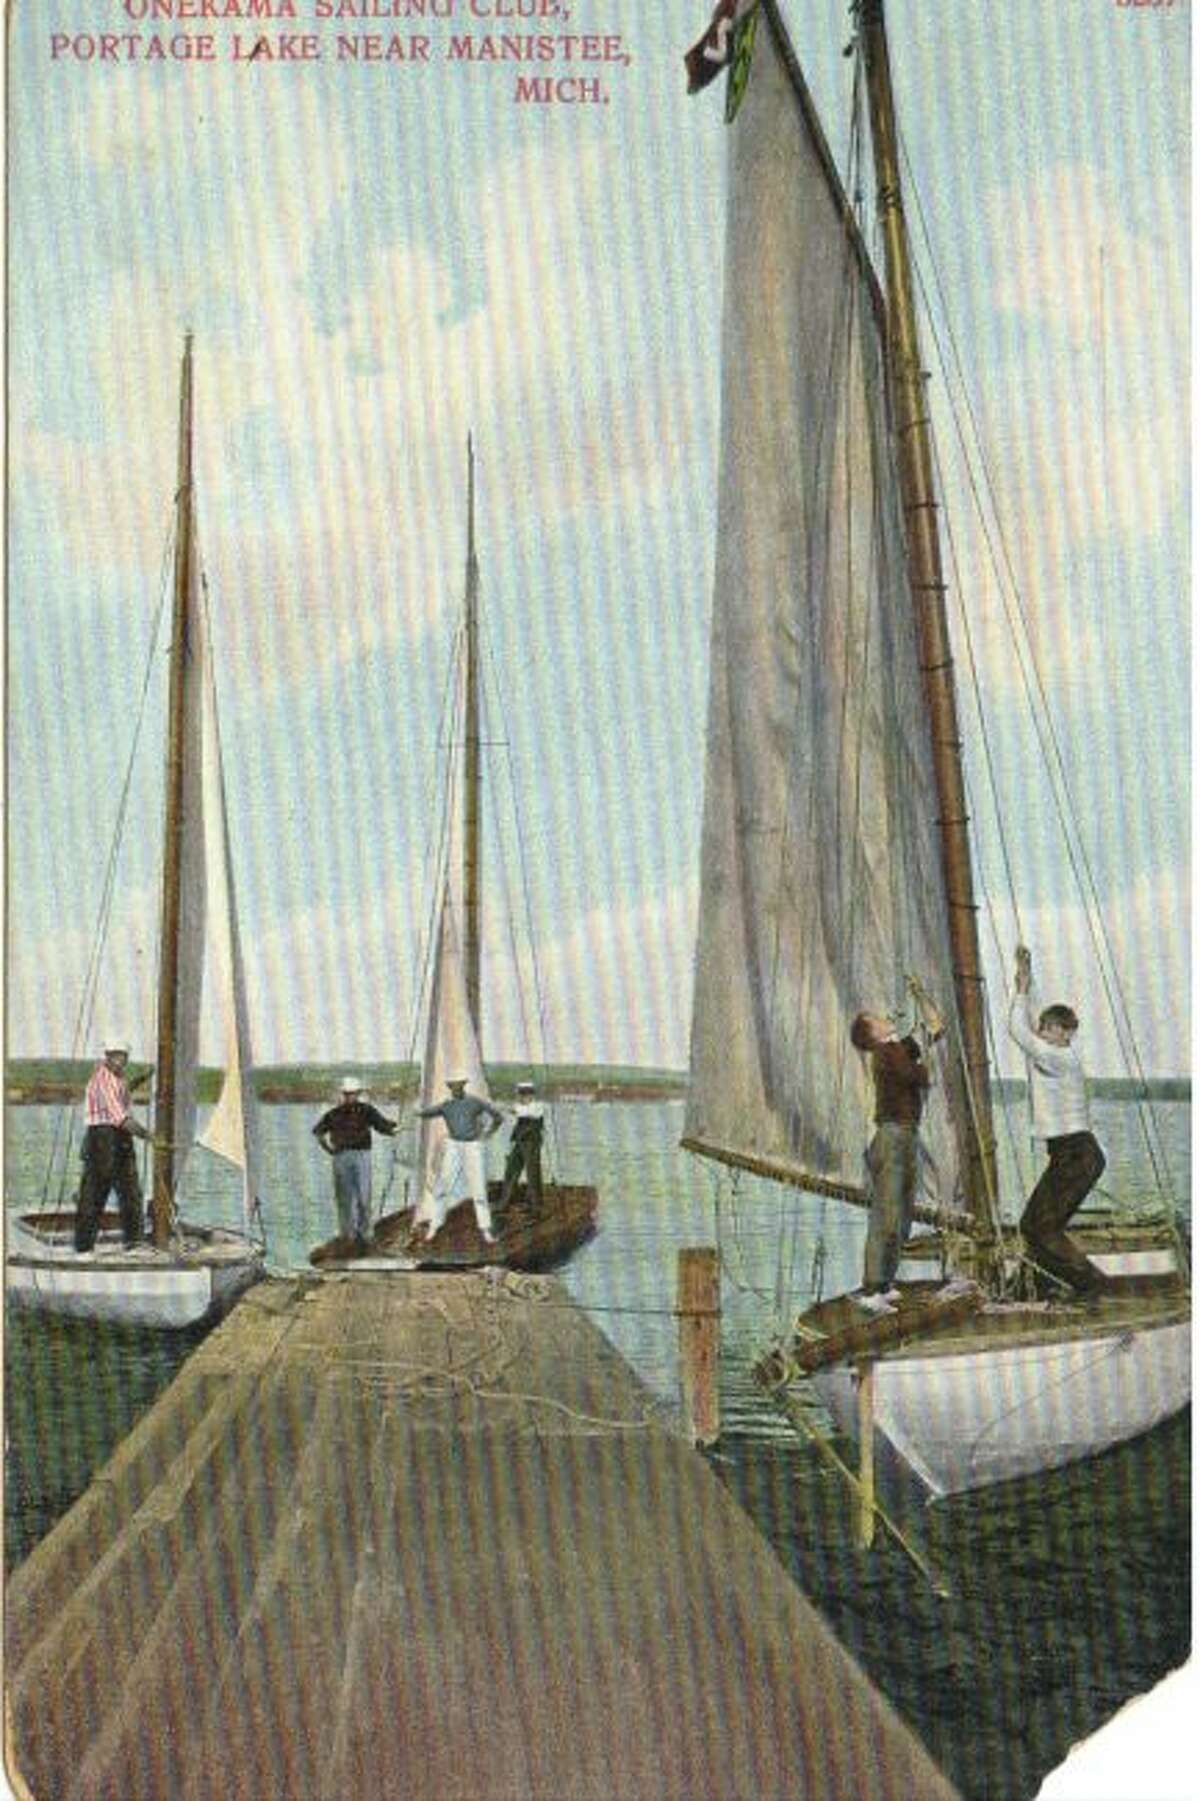 The Portage Lake Yacht Club was a popular group in Manistee County during the early 1900s.